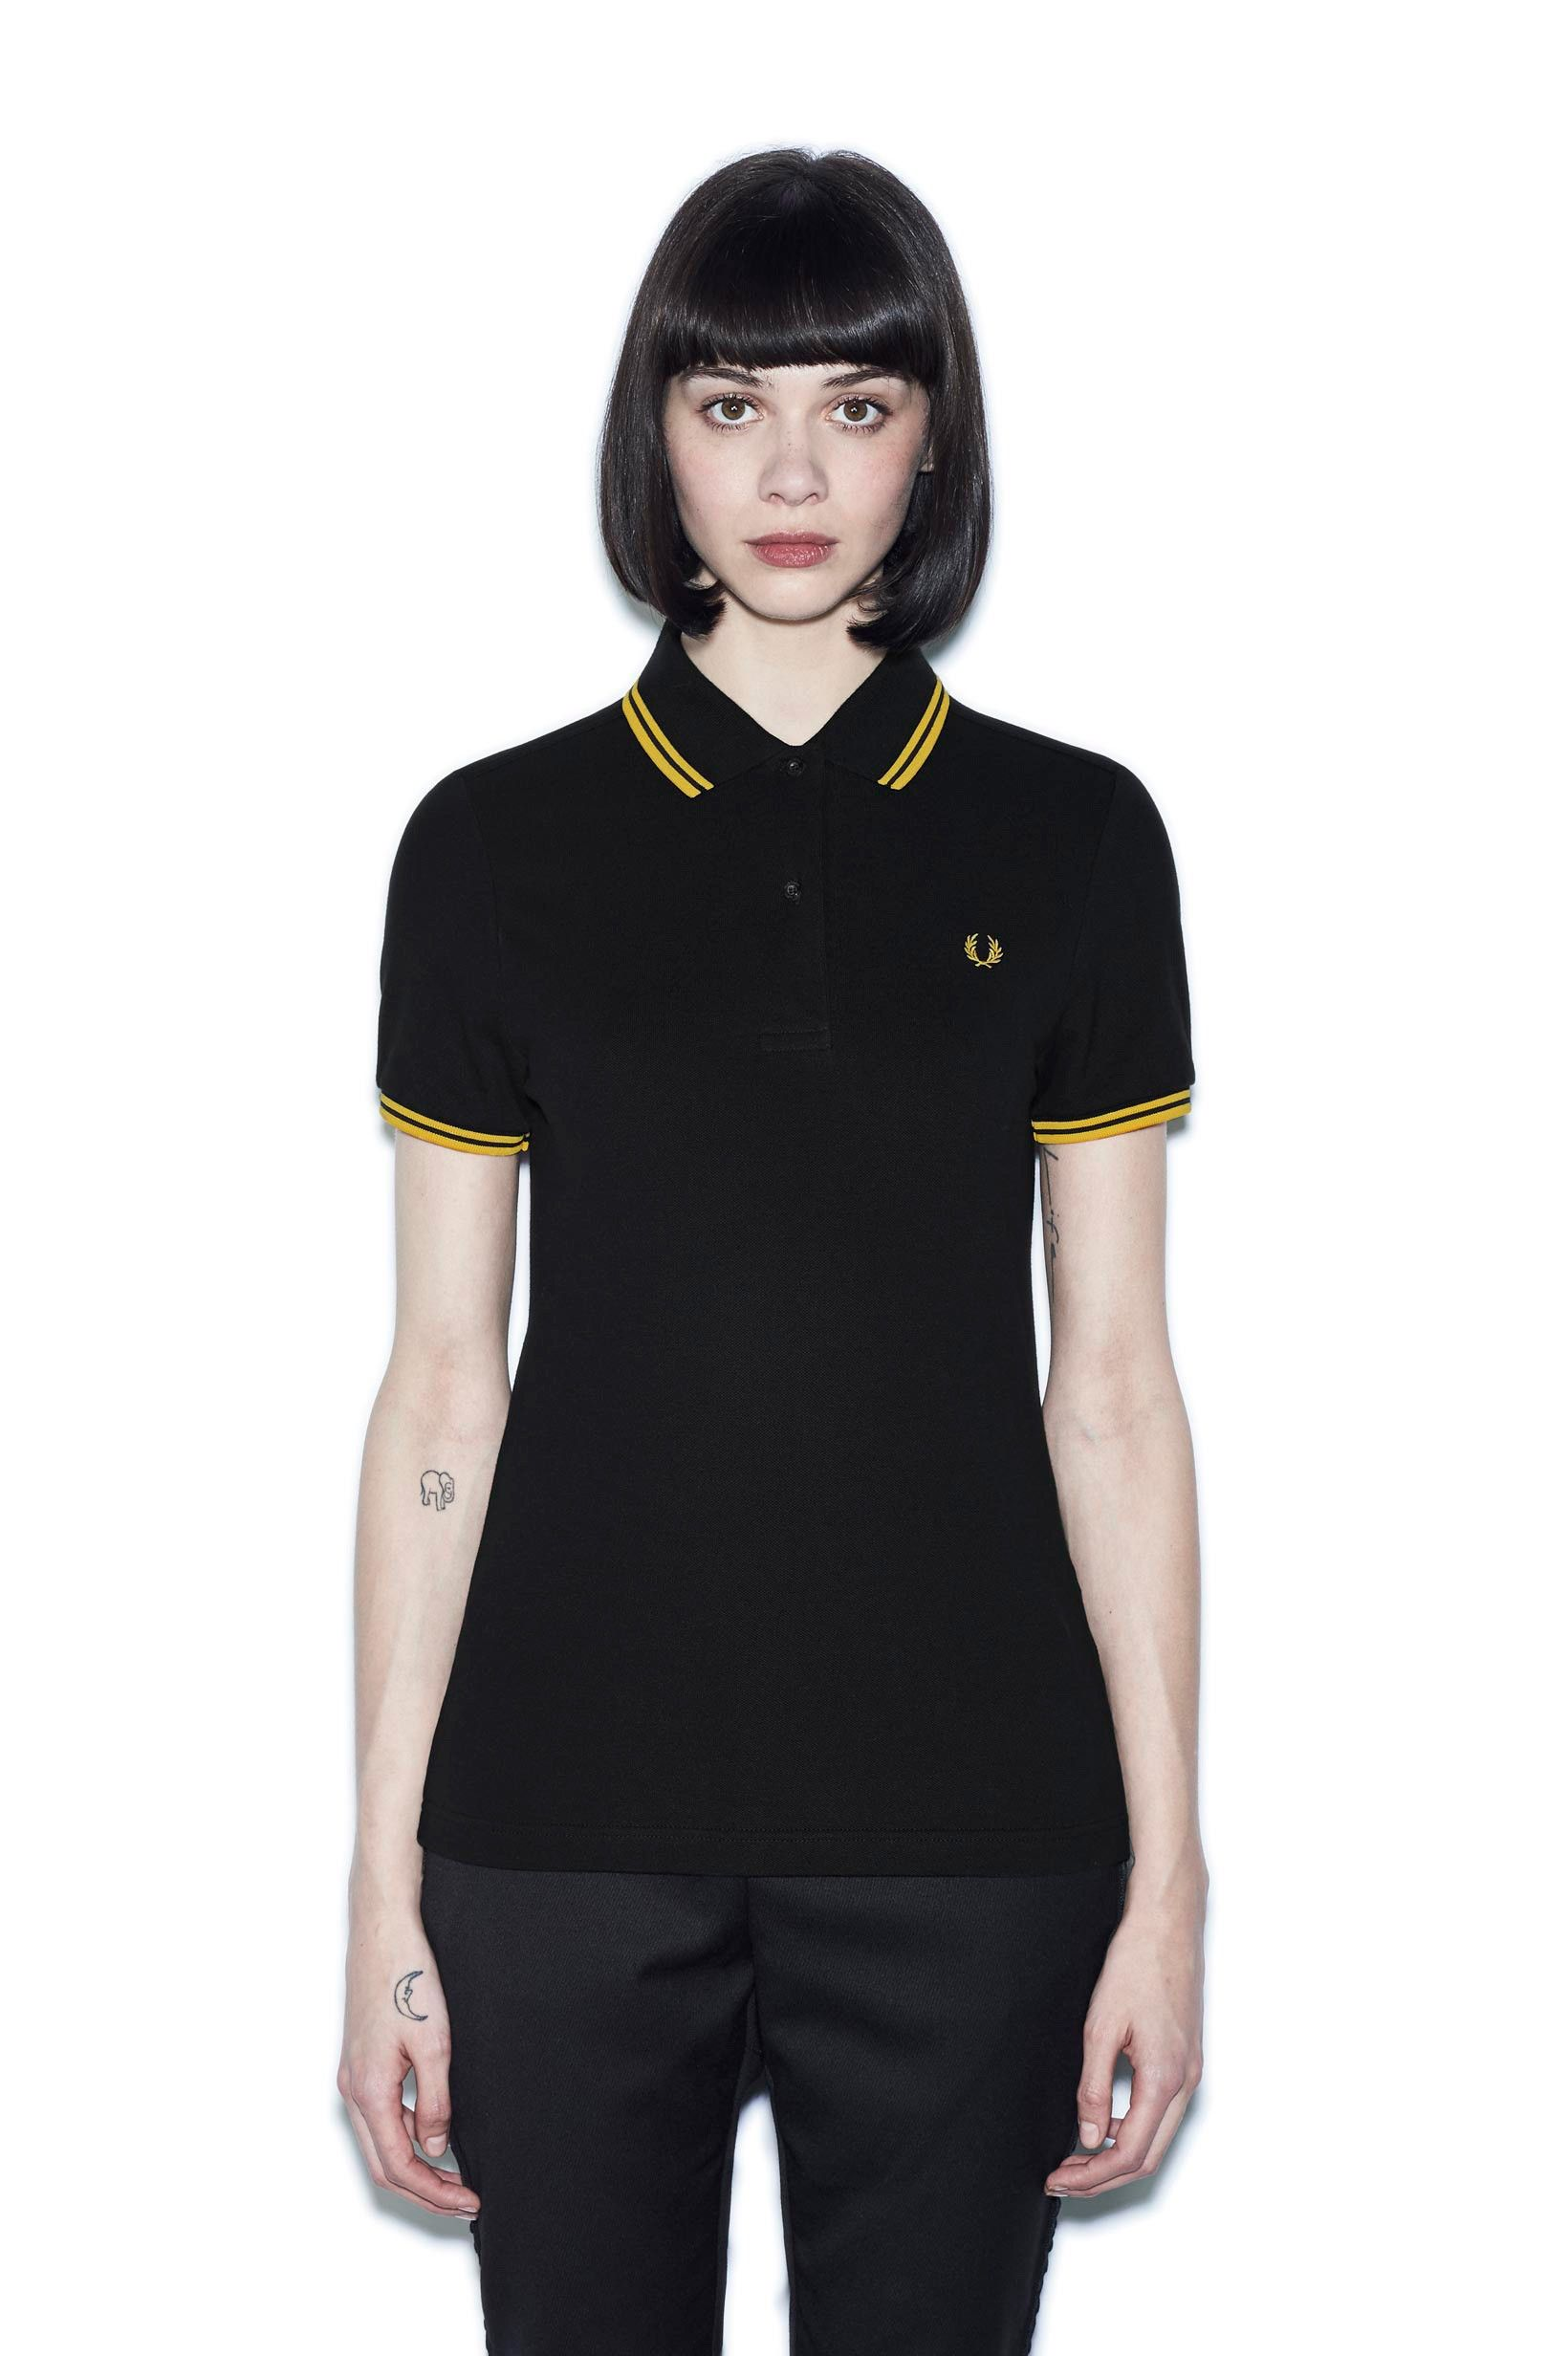 d8c7115e5c82 Fred Perry - G3600 Black / Yellow / Yellow | polo in 2019 | Fred ...